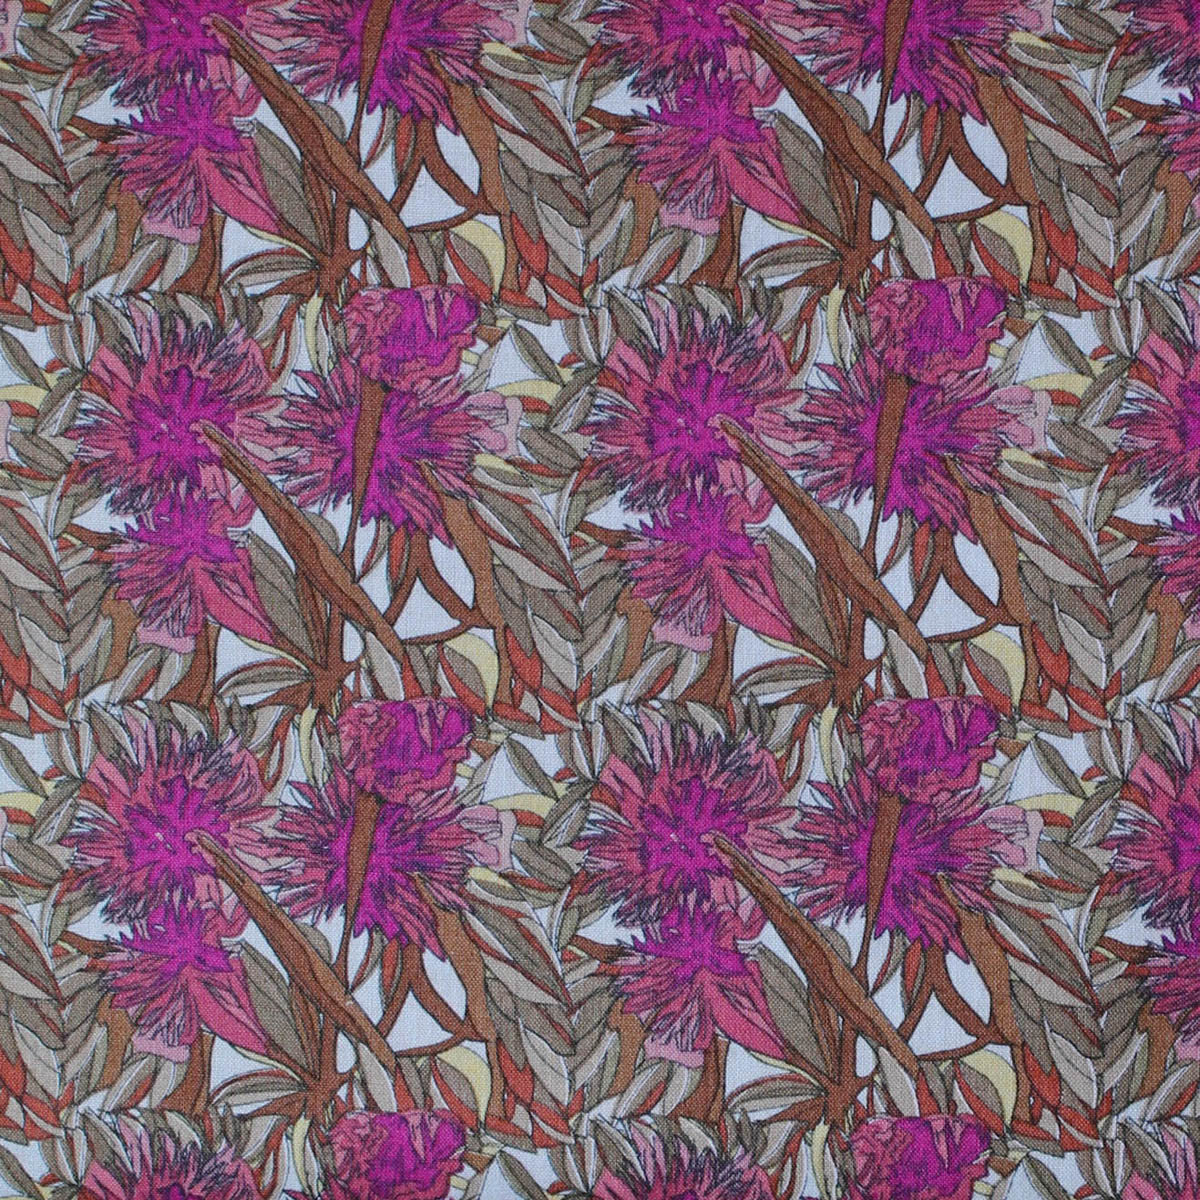 FLOWERING GUM PURPLE by Aboriginal Artist ADAM CAMILLERI